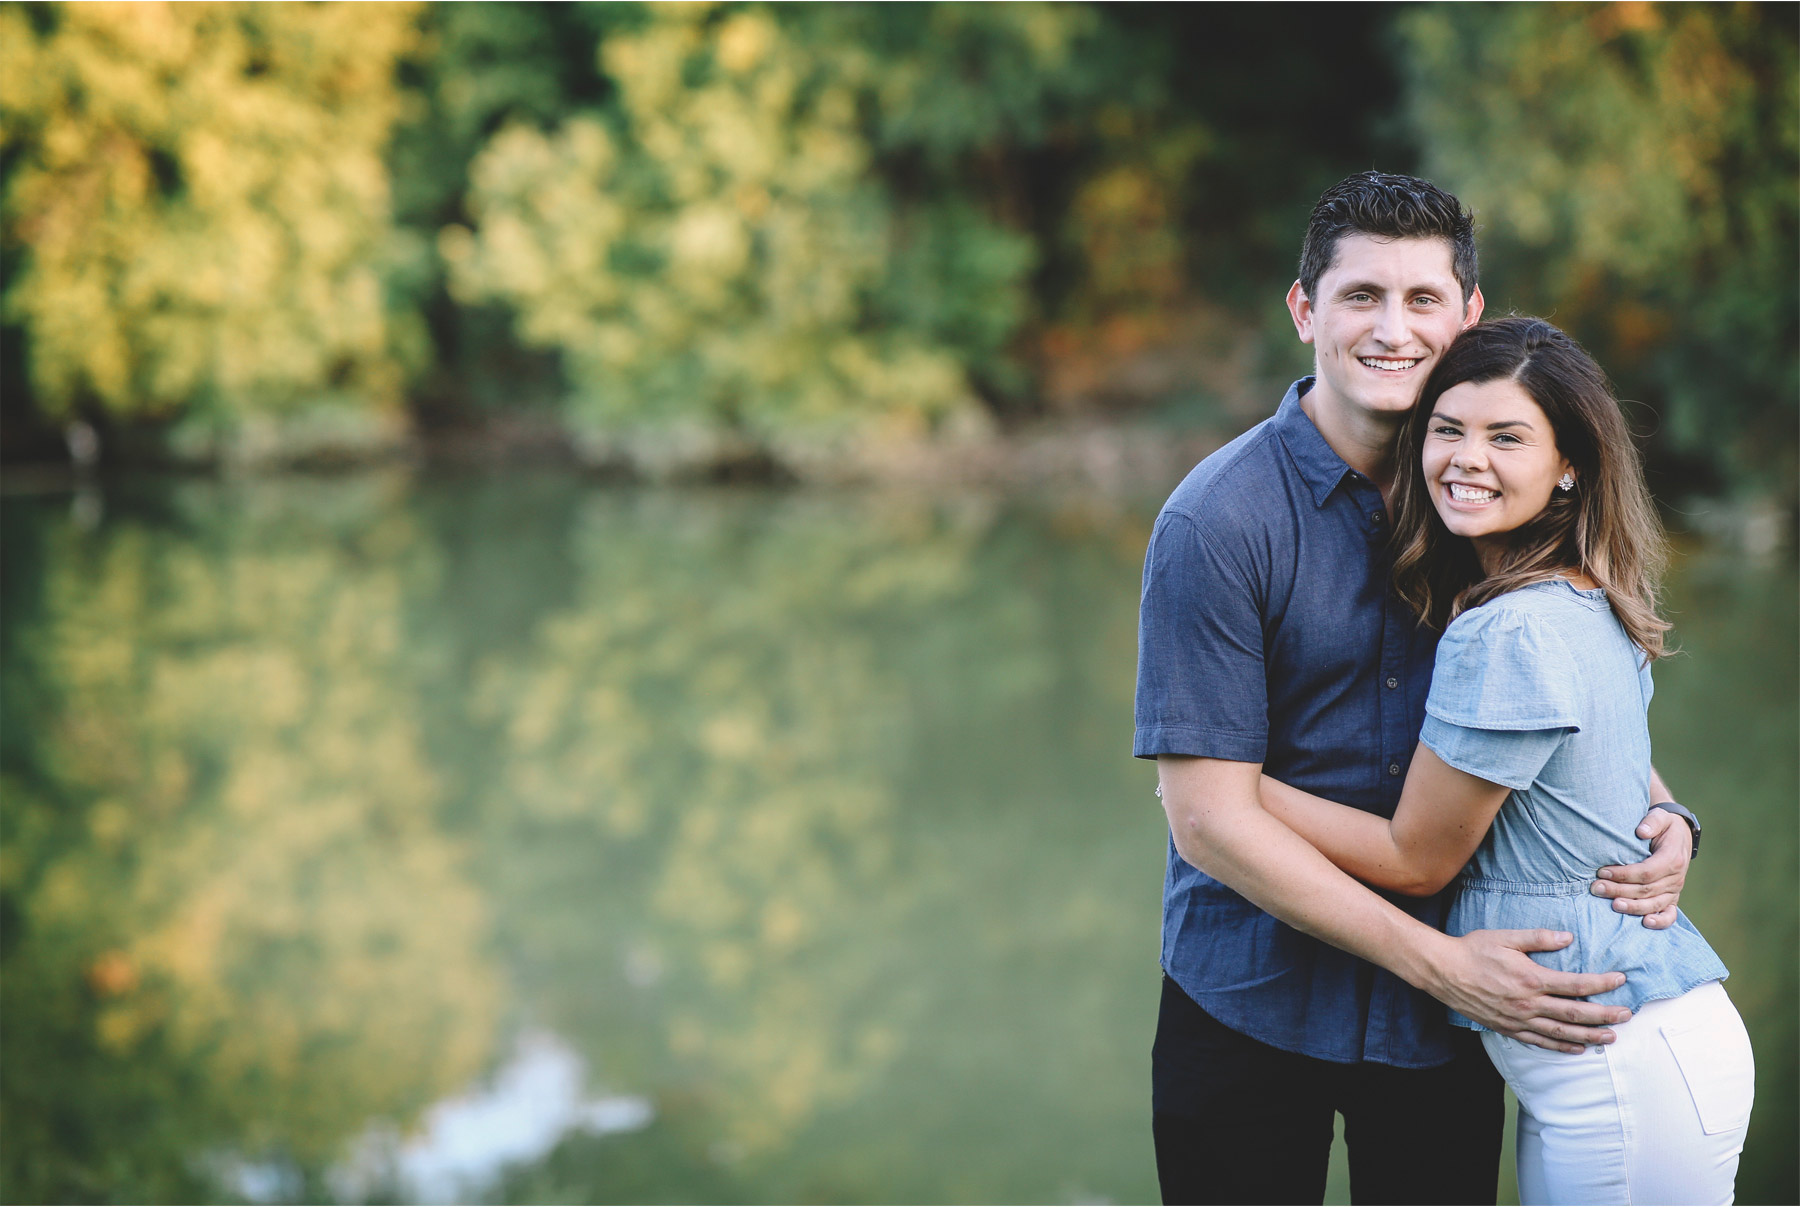 12-Fly-to-Me-Destination-Engagement-Session-Vick-Photography-Fort-Worth-Texas-Couple-River-Creek-Maggie-and-Matt.jpg